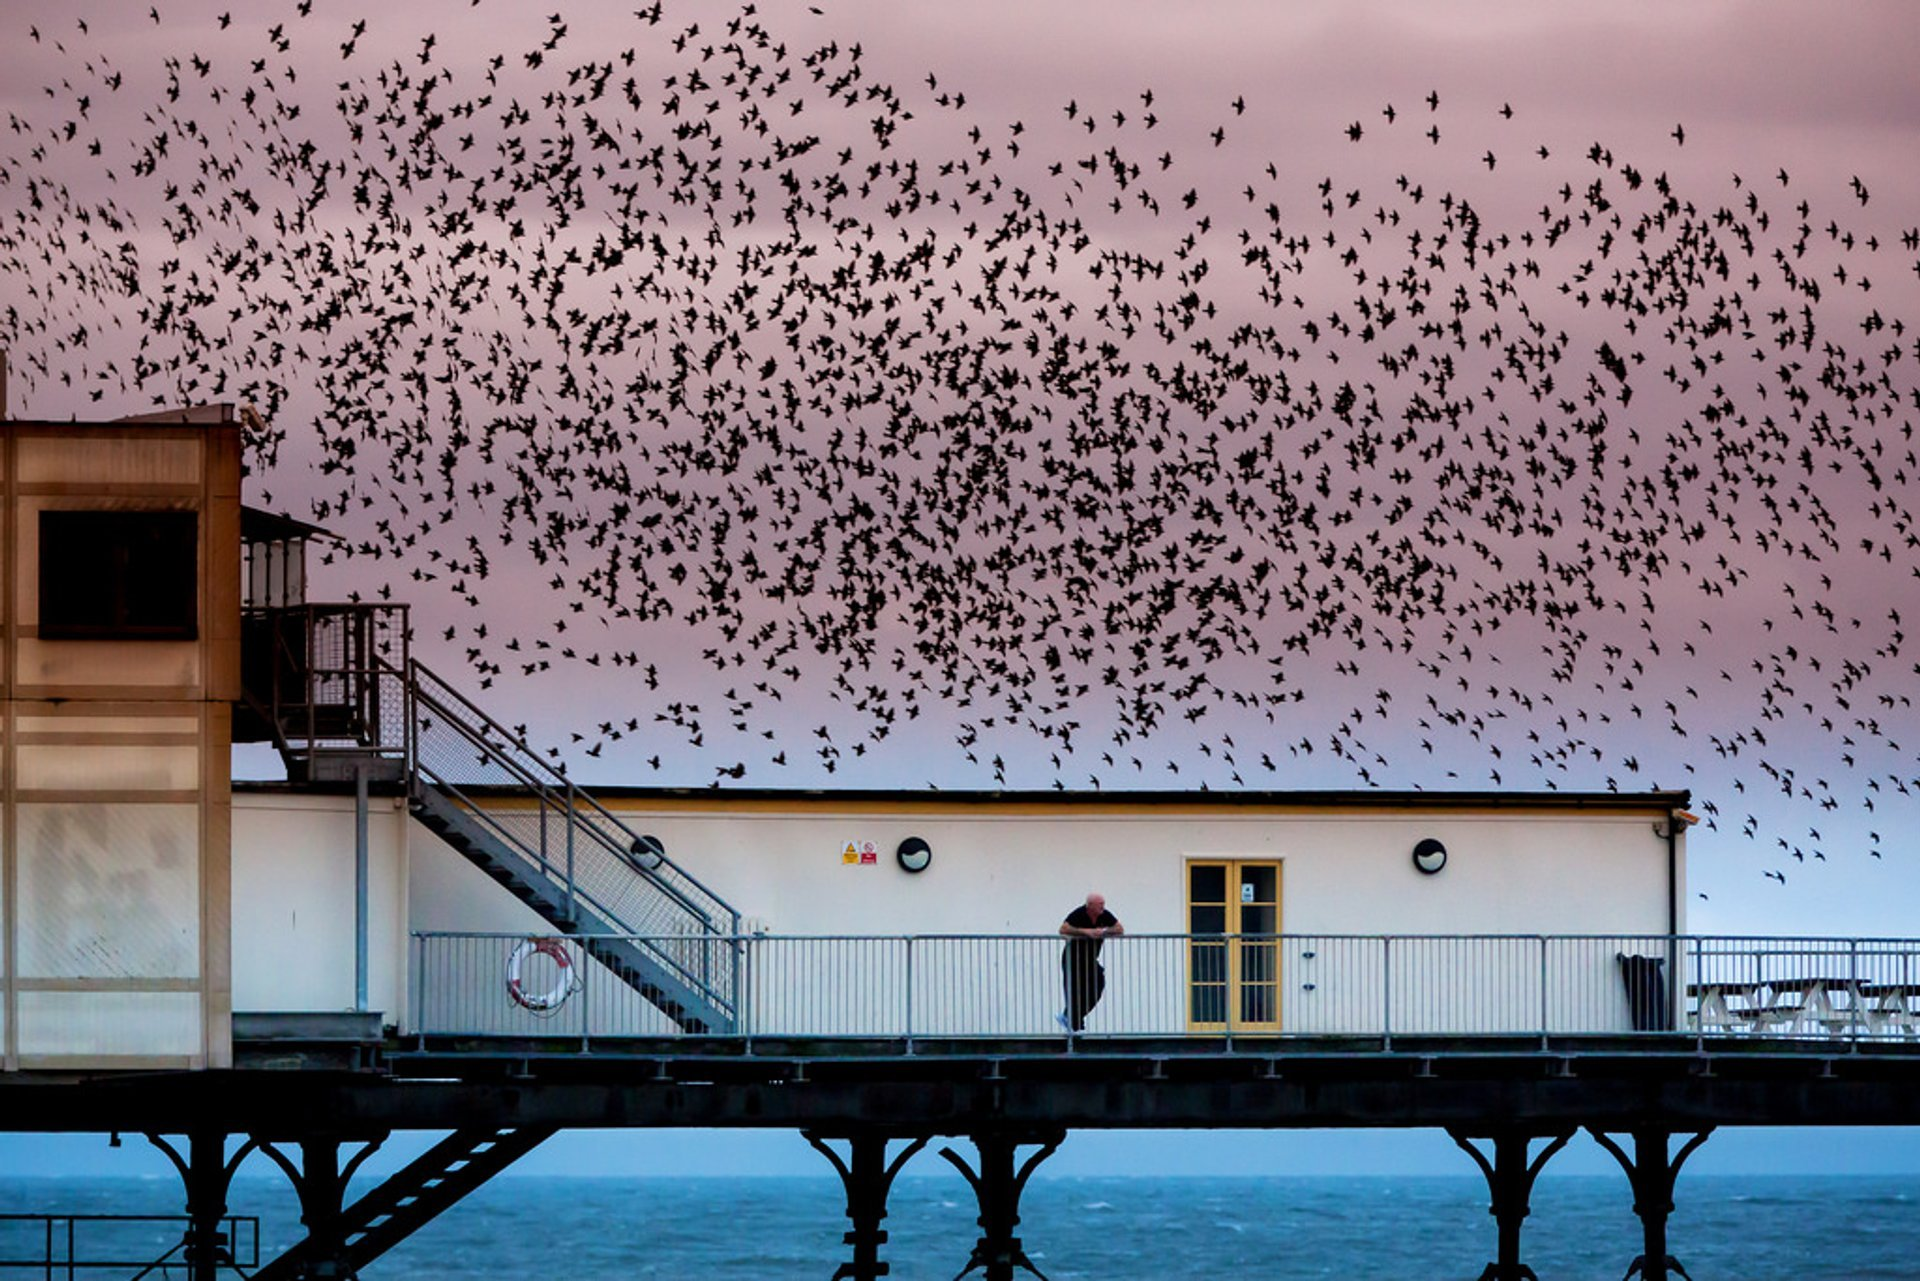 Starling Murmuration in Wales 2020 - Best Time